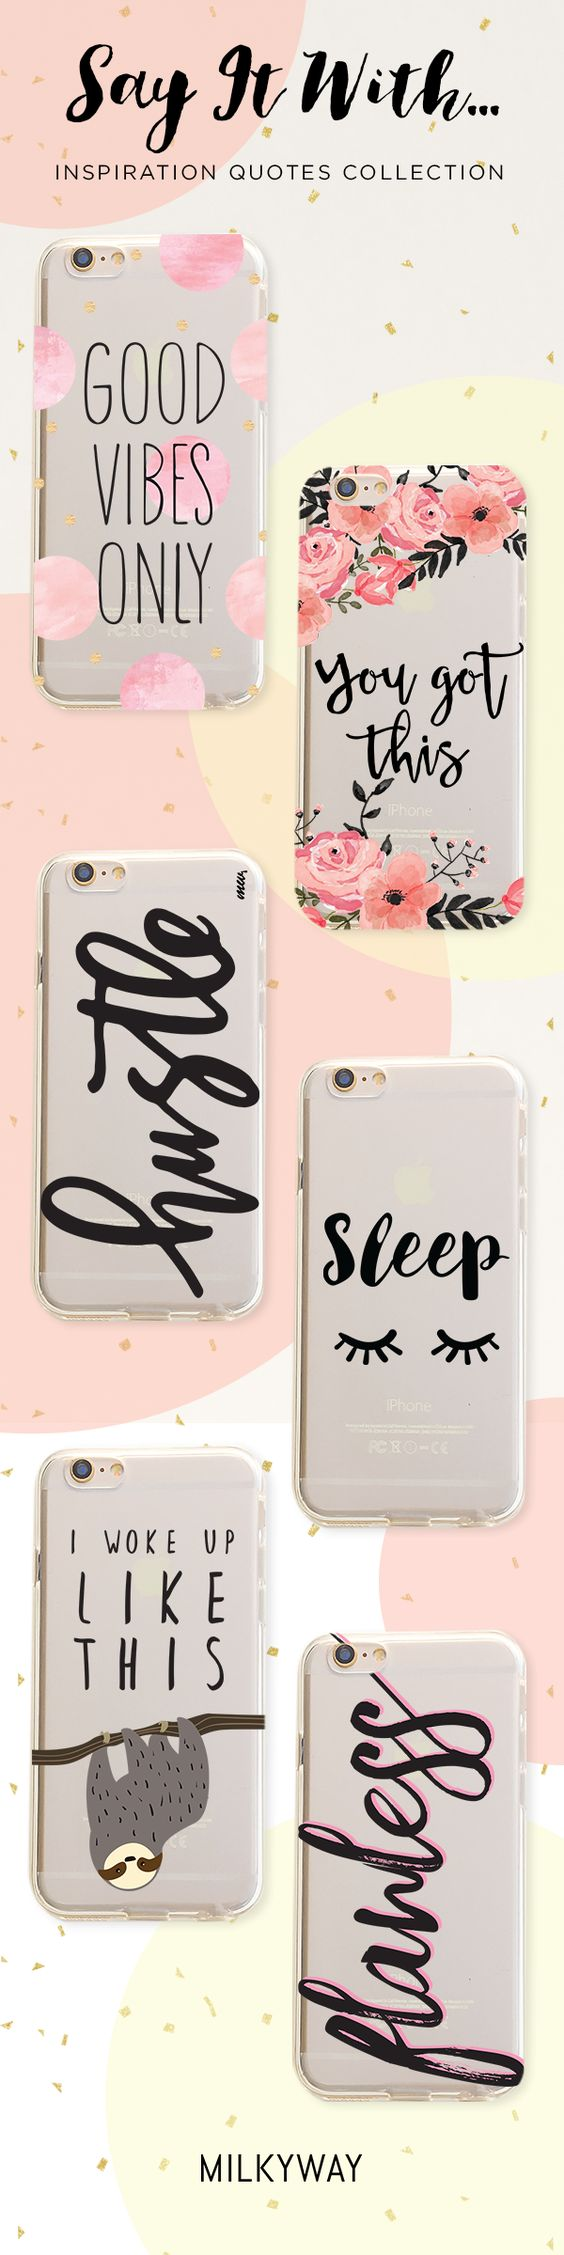 Good vibes only, I woke up like this, cool clear phone cases